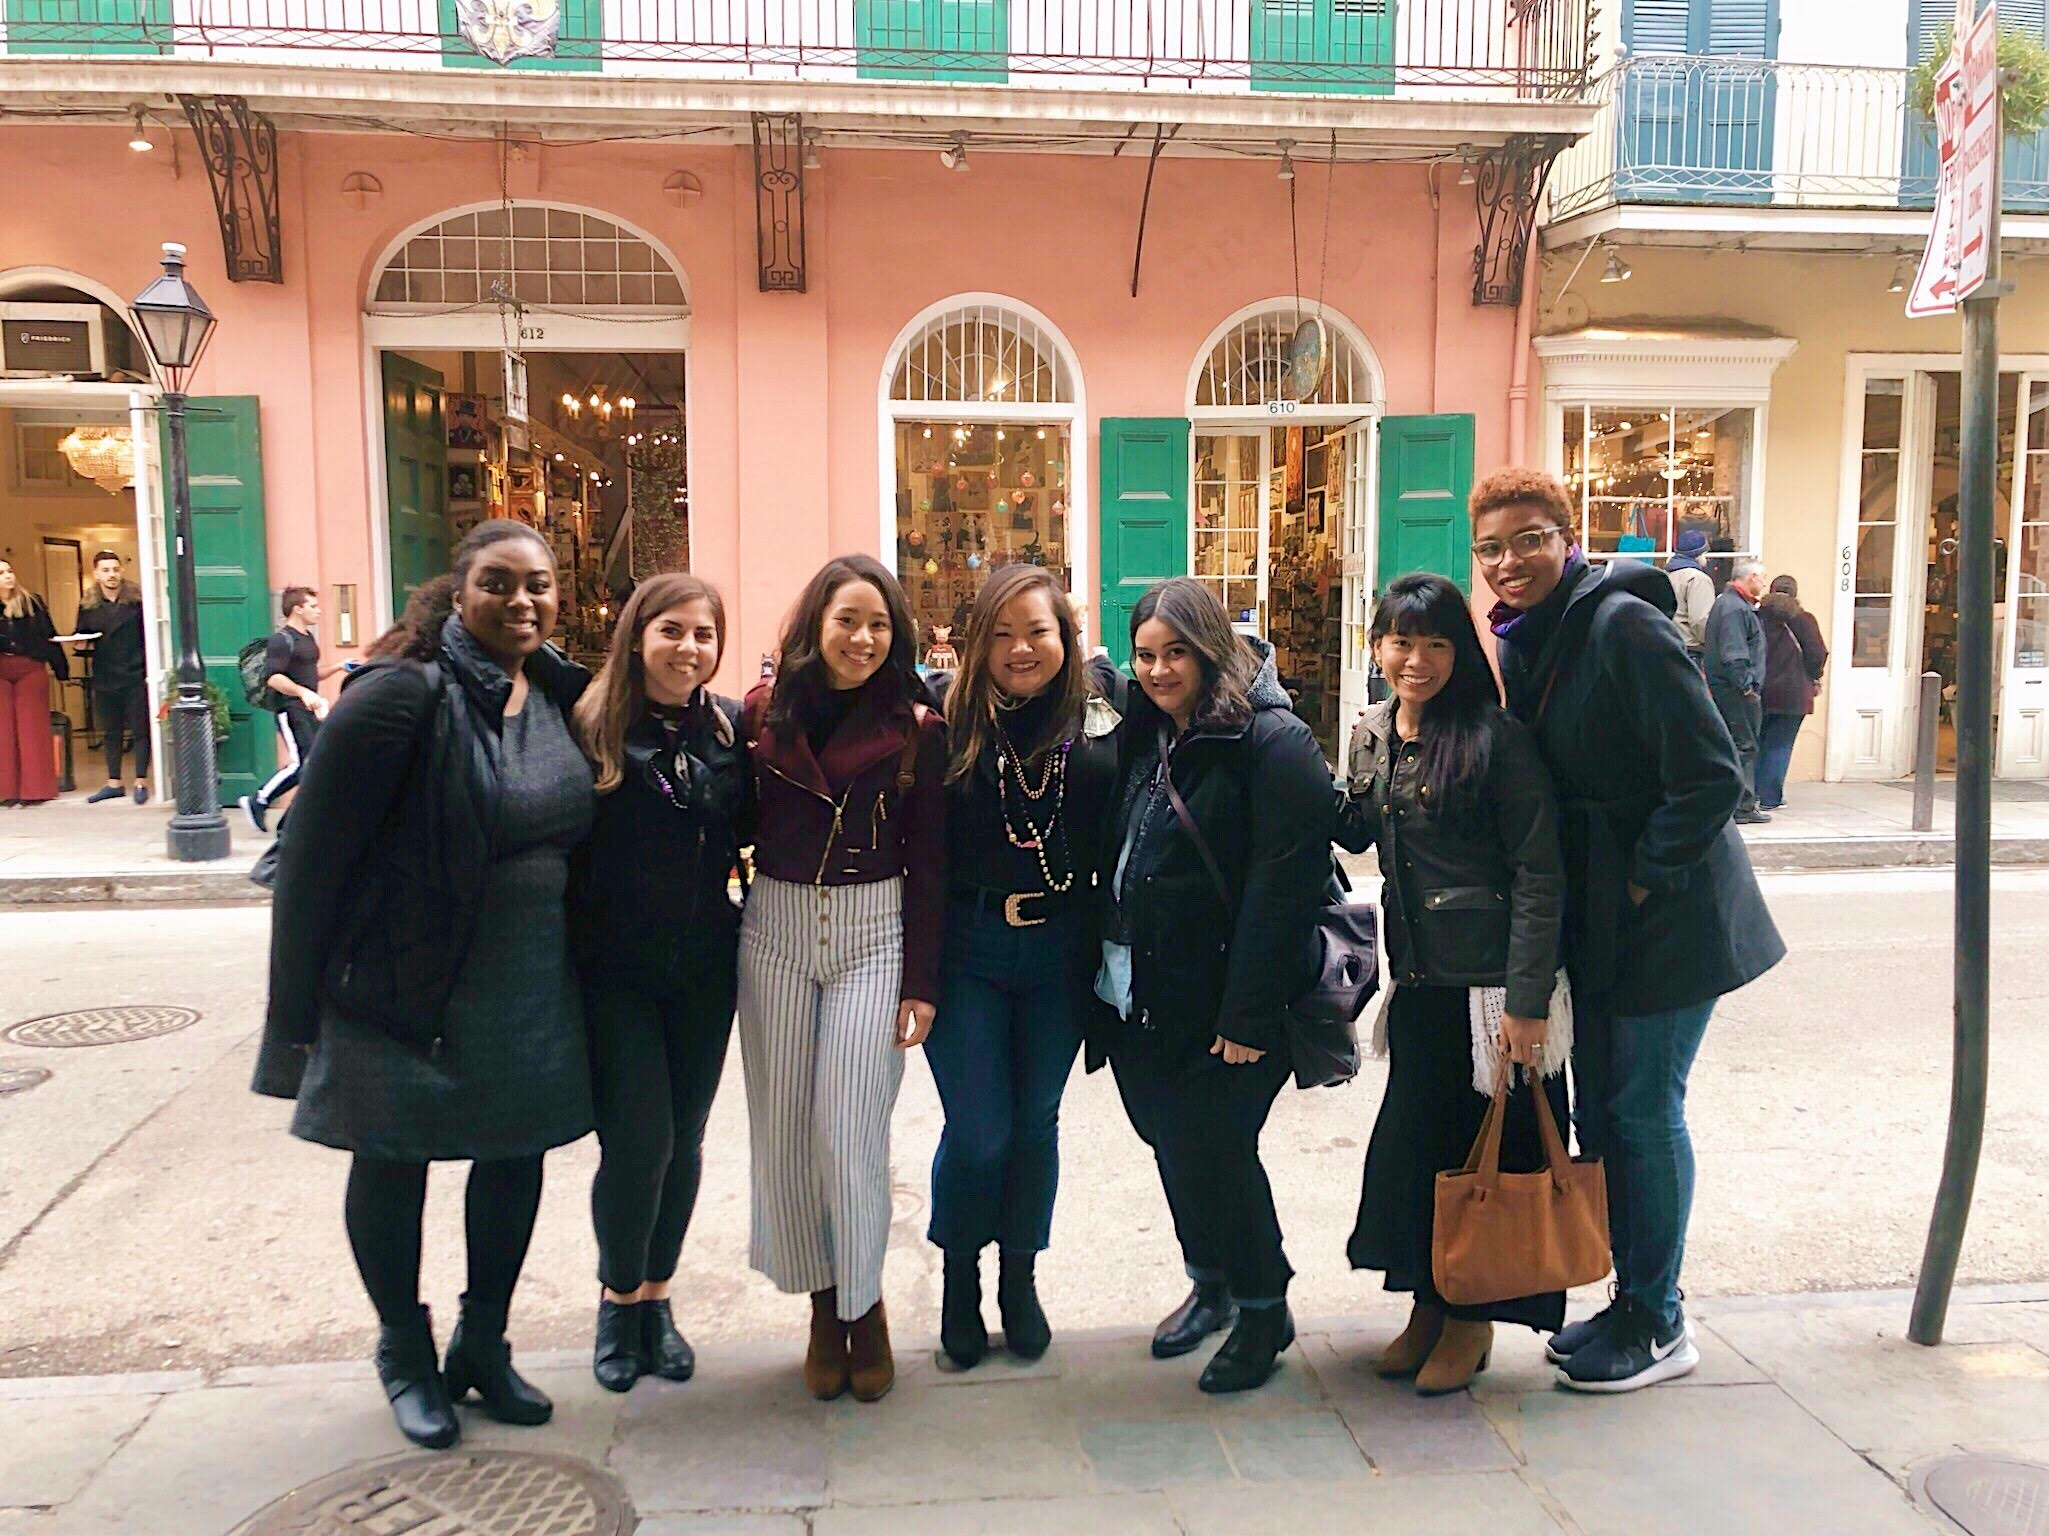 Shopping with the gals in the French Quarter